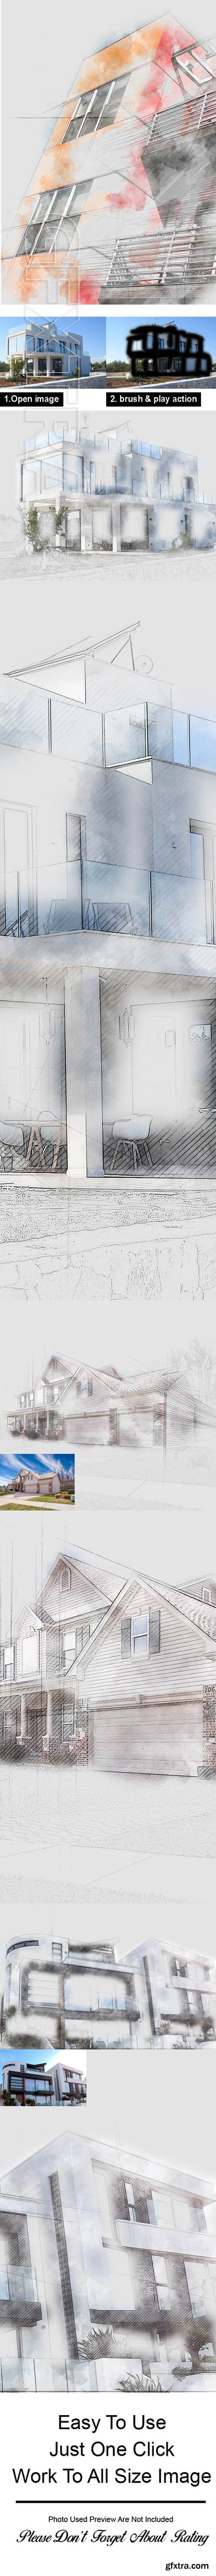 GraphicRiver - Unfinished Sketch Photoshop Action 23759888